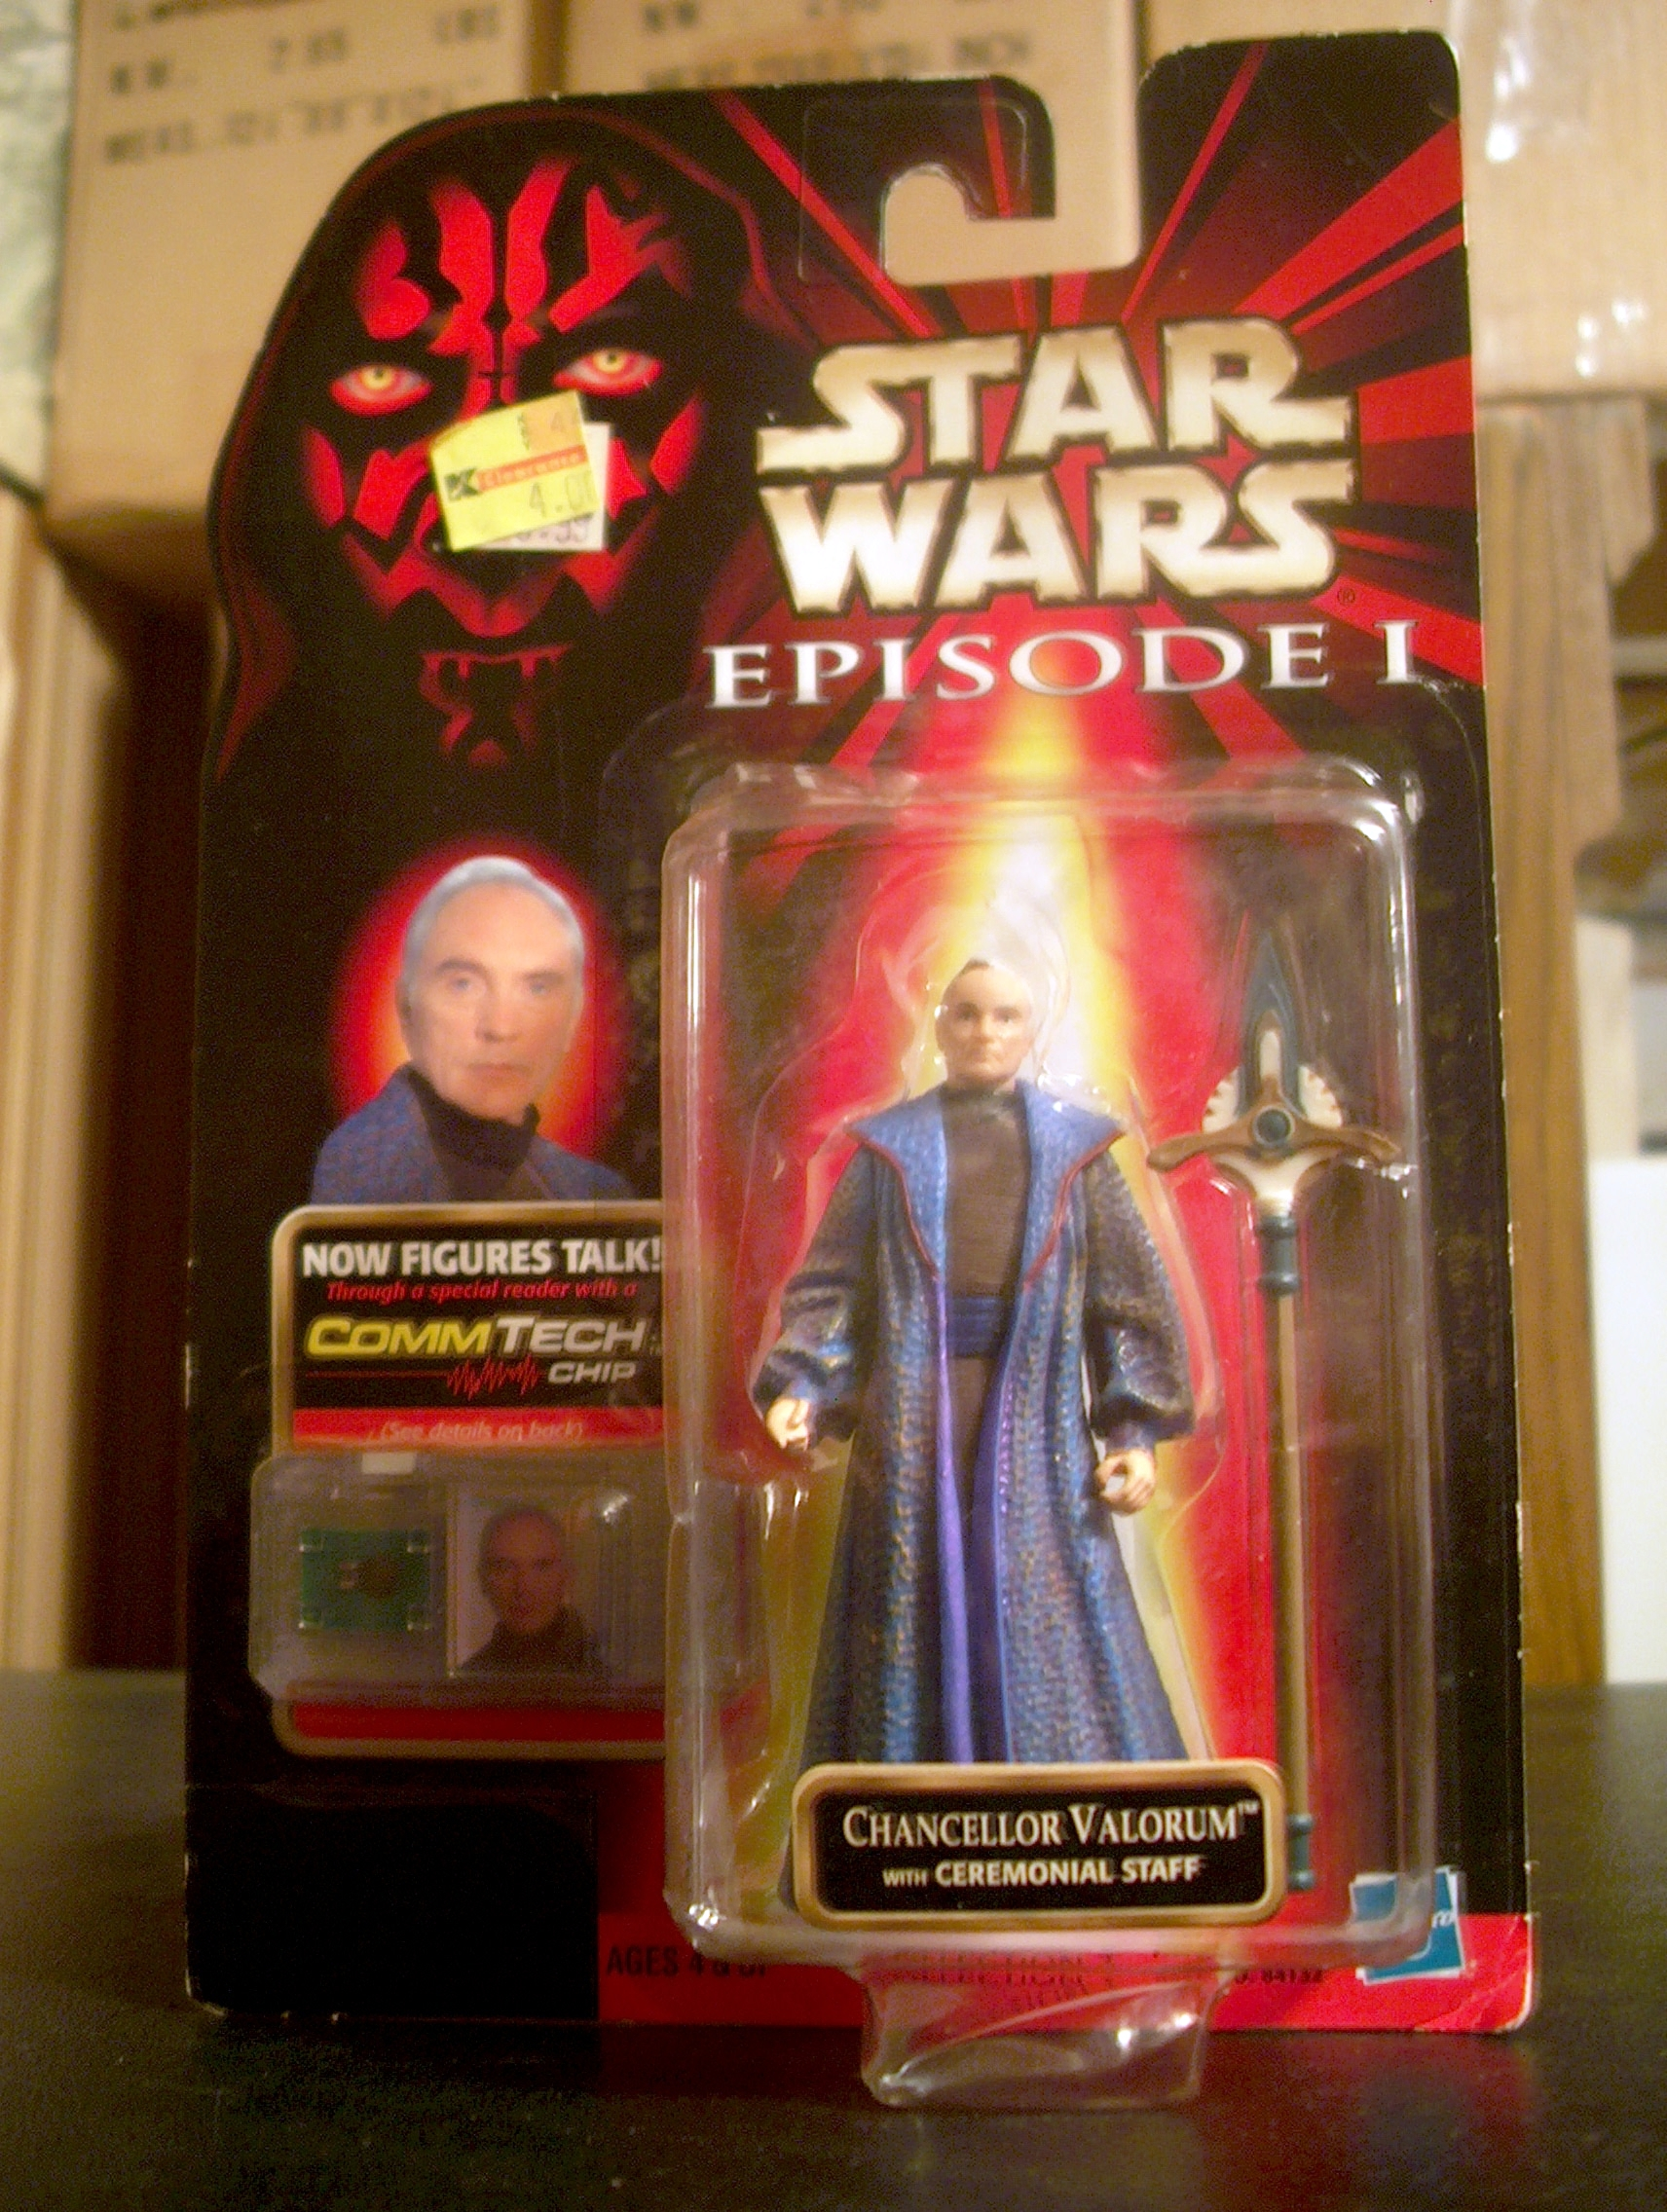 Chancellor Valorum™ with Ceremonial Staff (